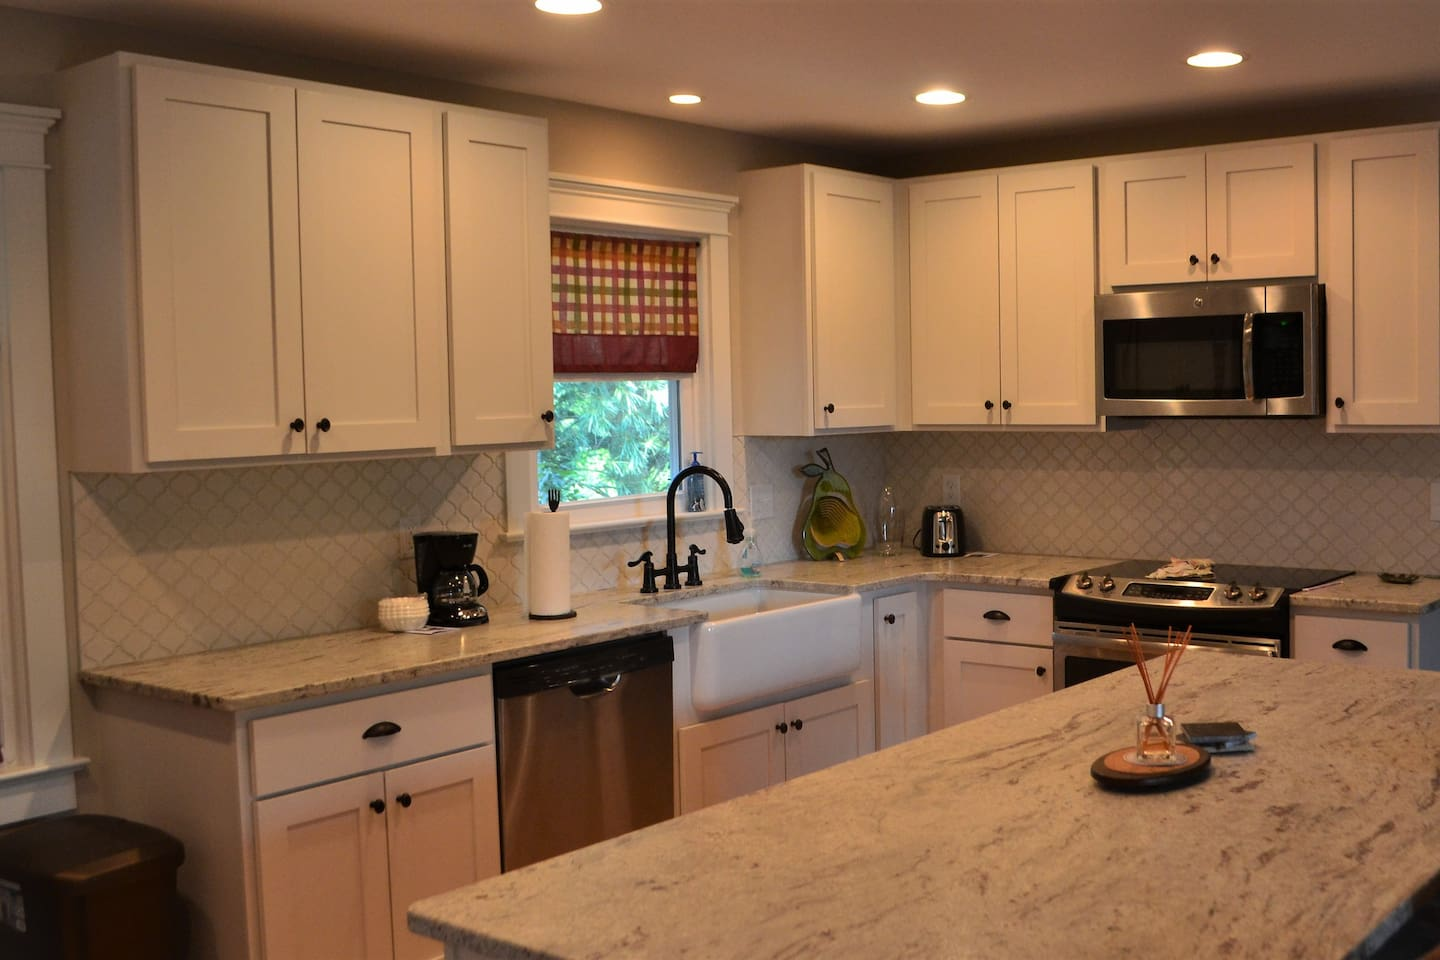 Recently remodeled full kitchen with basic cooking supplies.